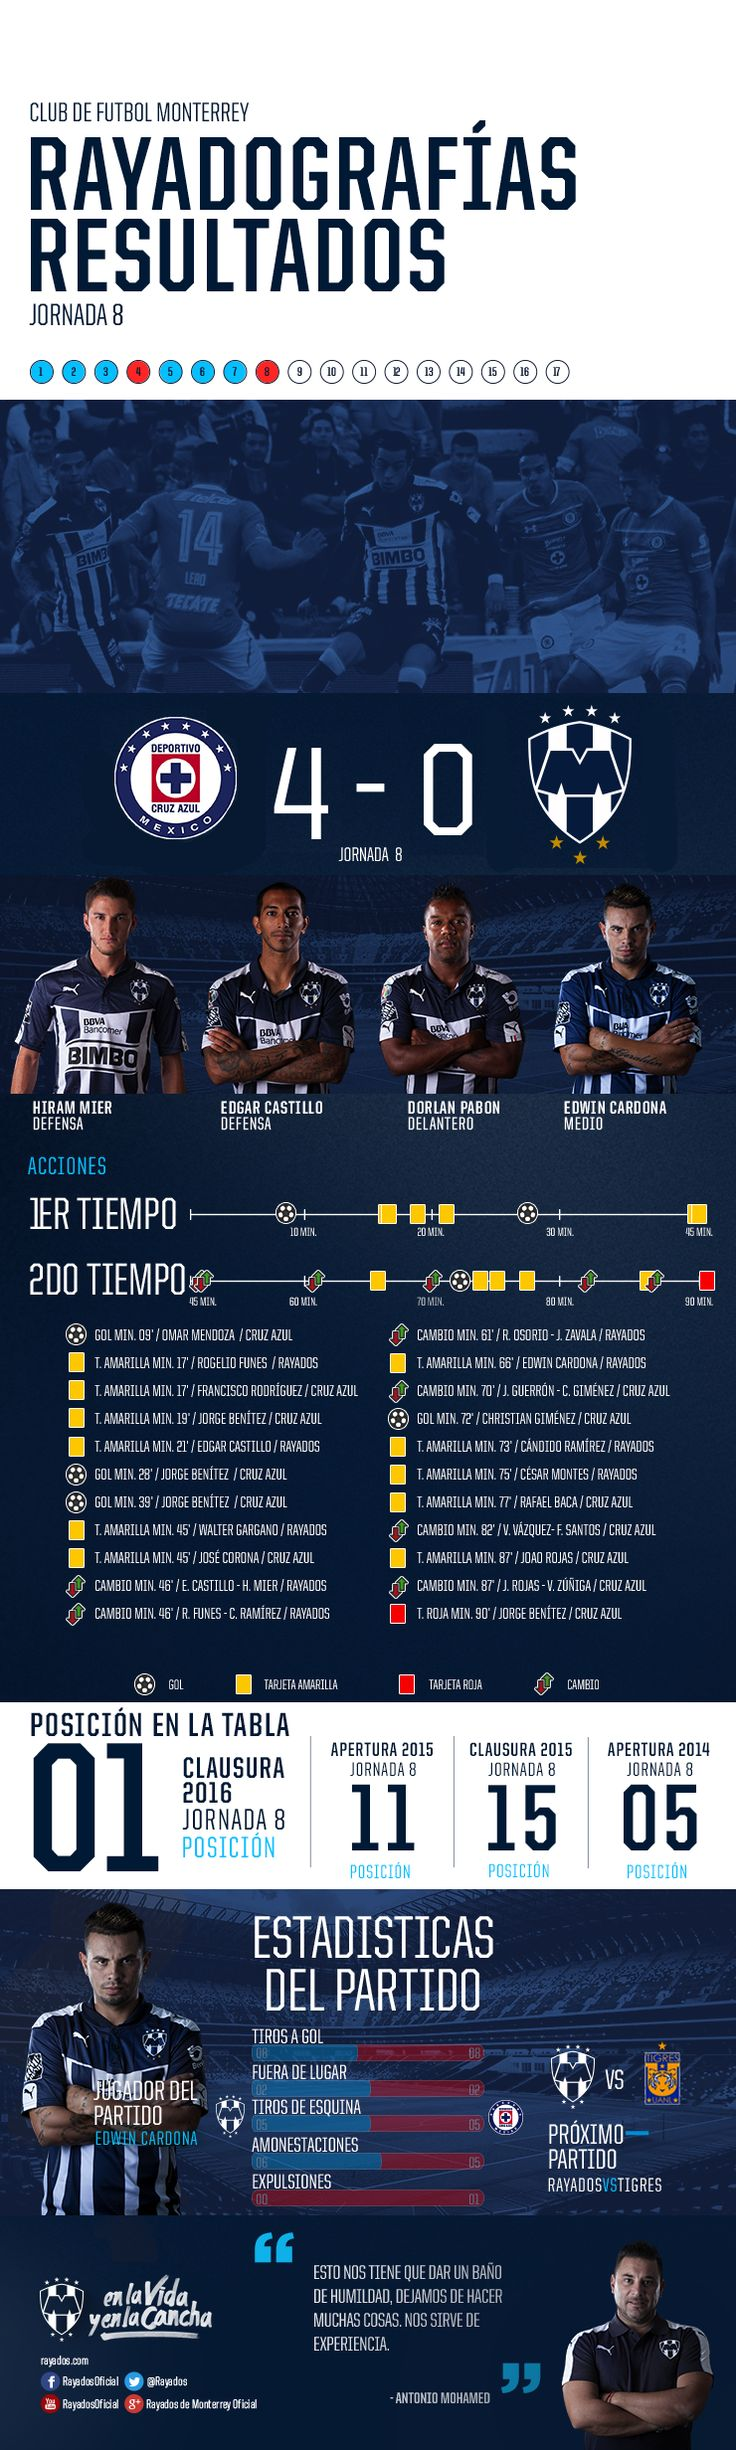 Rayadografía - Cruz Azul vs. Monterrey (Post)